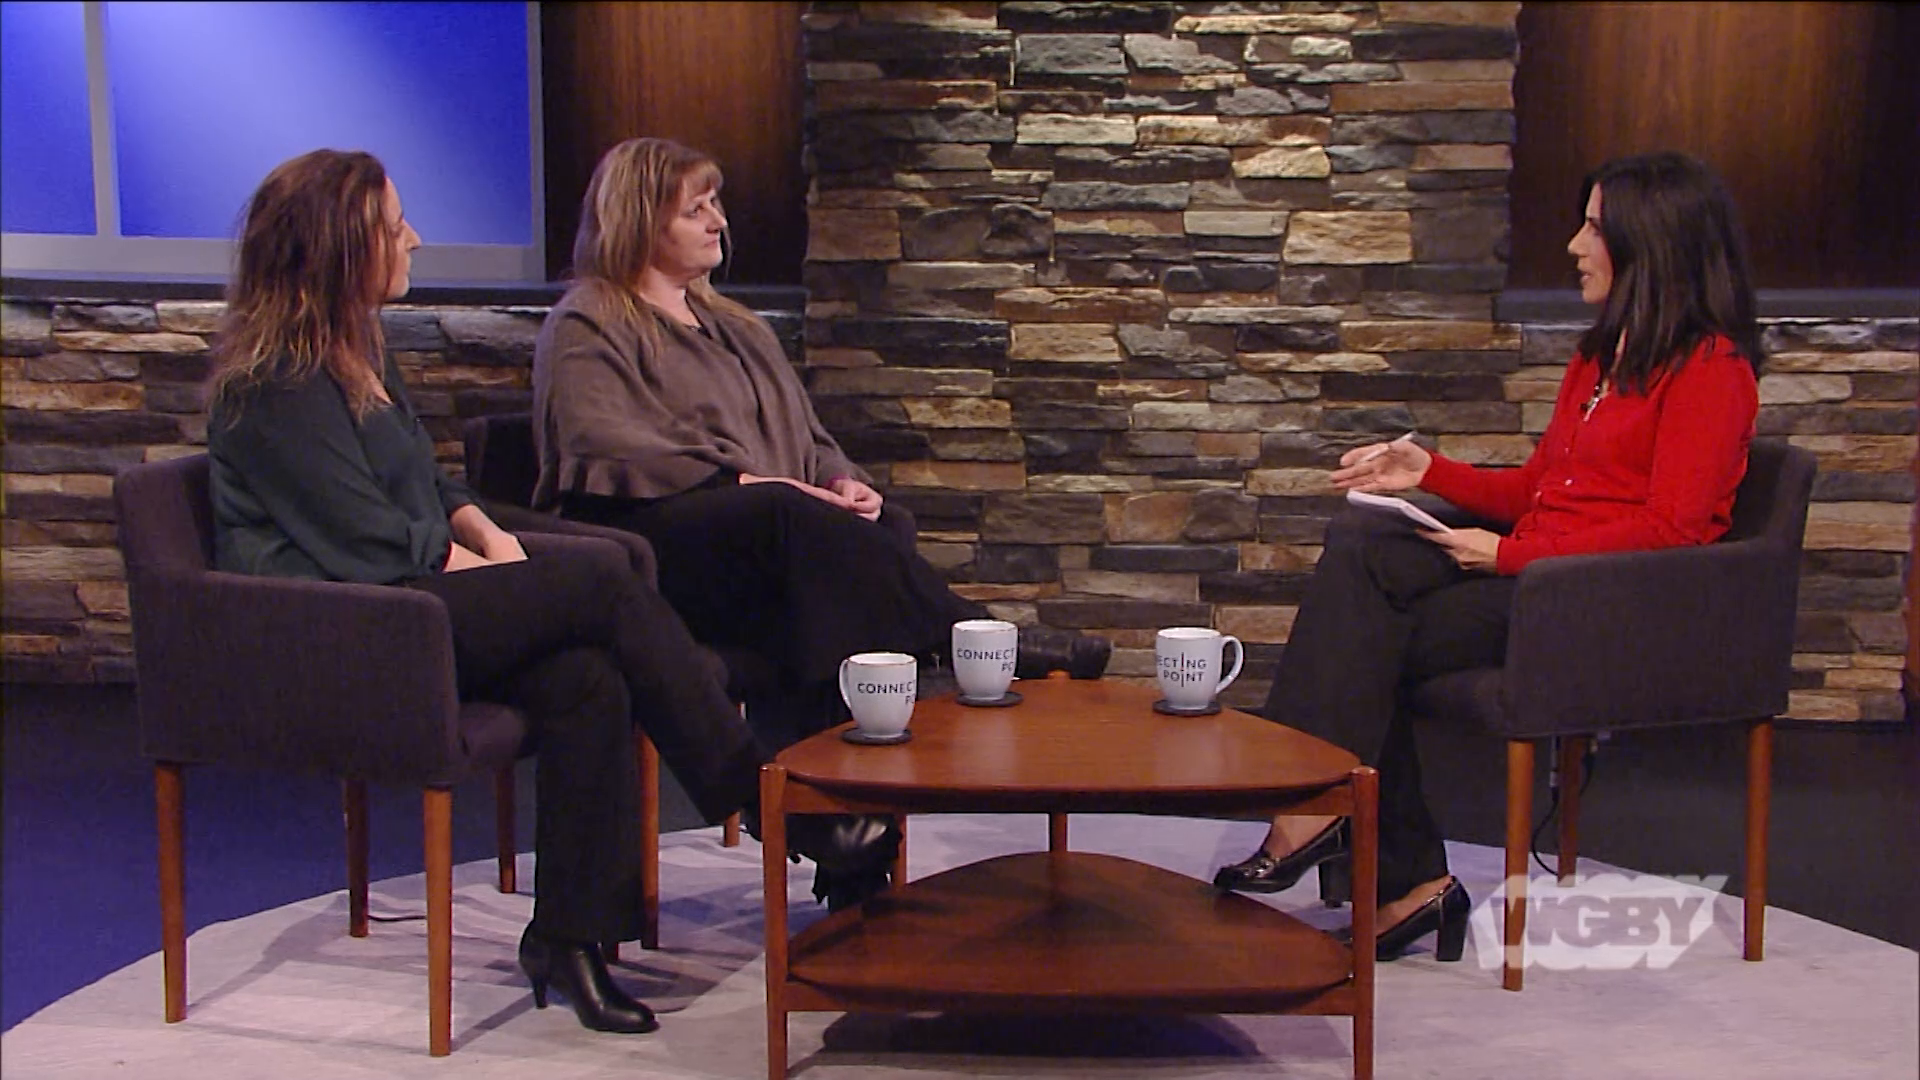 Mental Health Association Clincal Directors Amy Conklin & Alane Burgess share their tips for managing holiday stress and avoiding stressors.